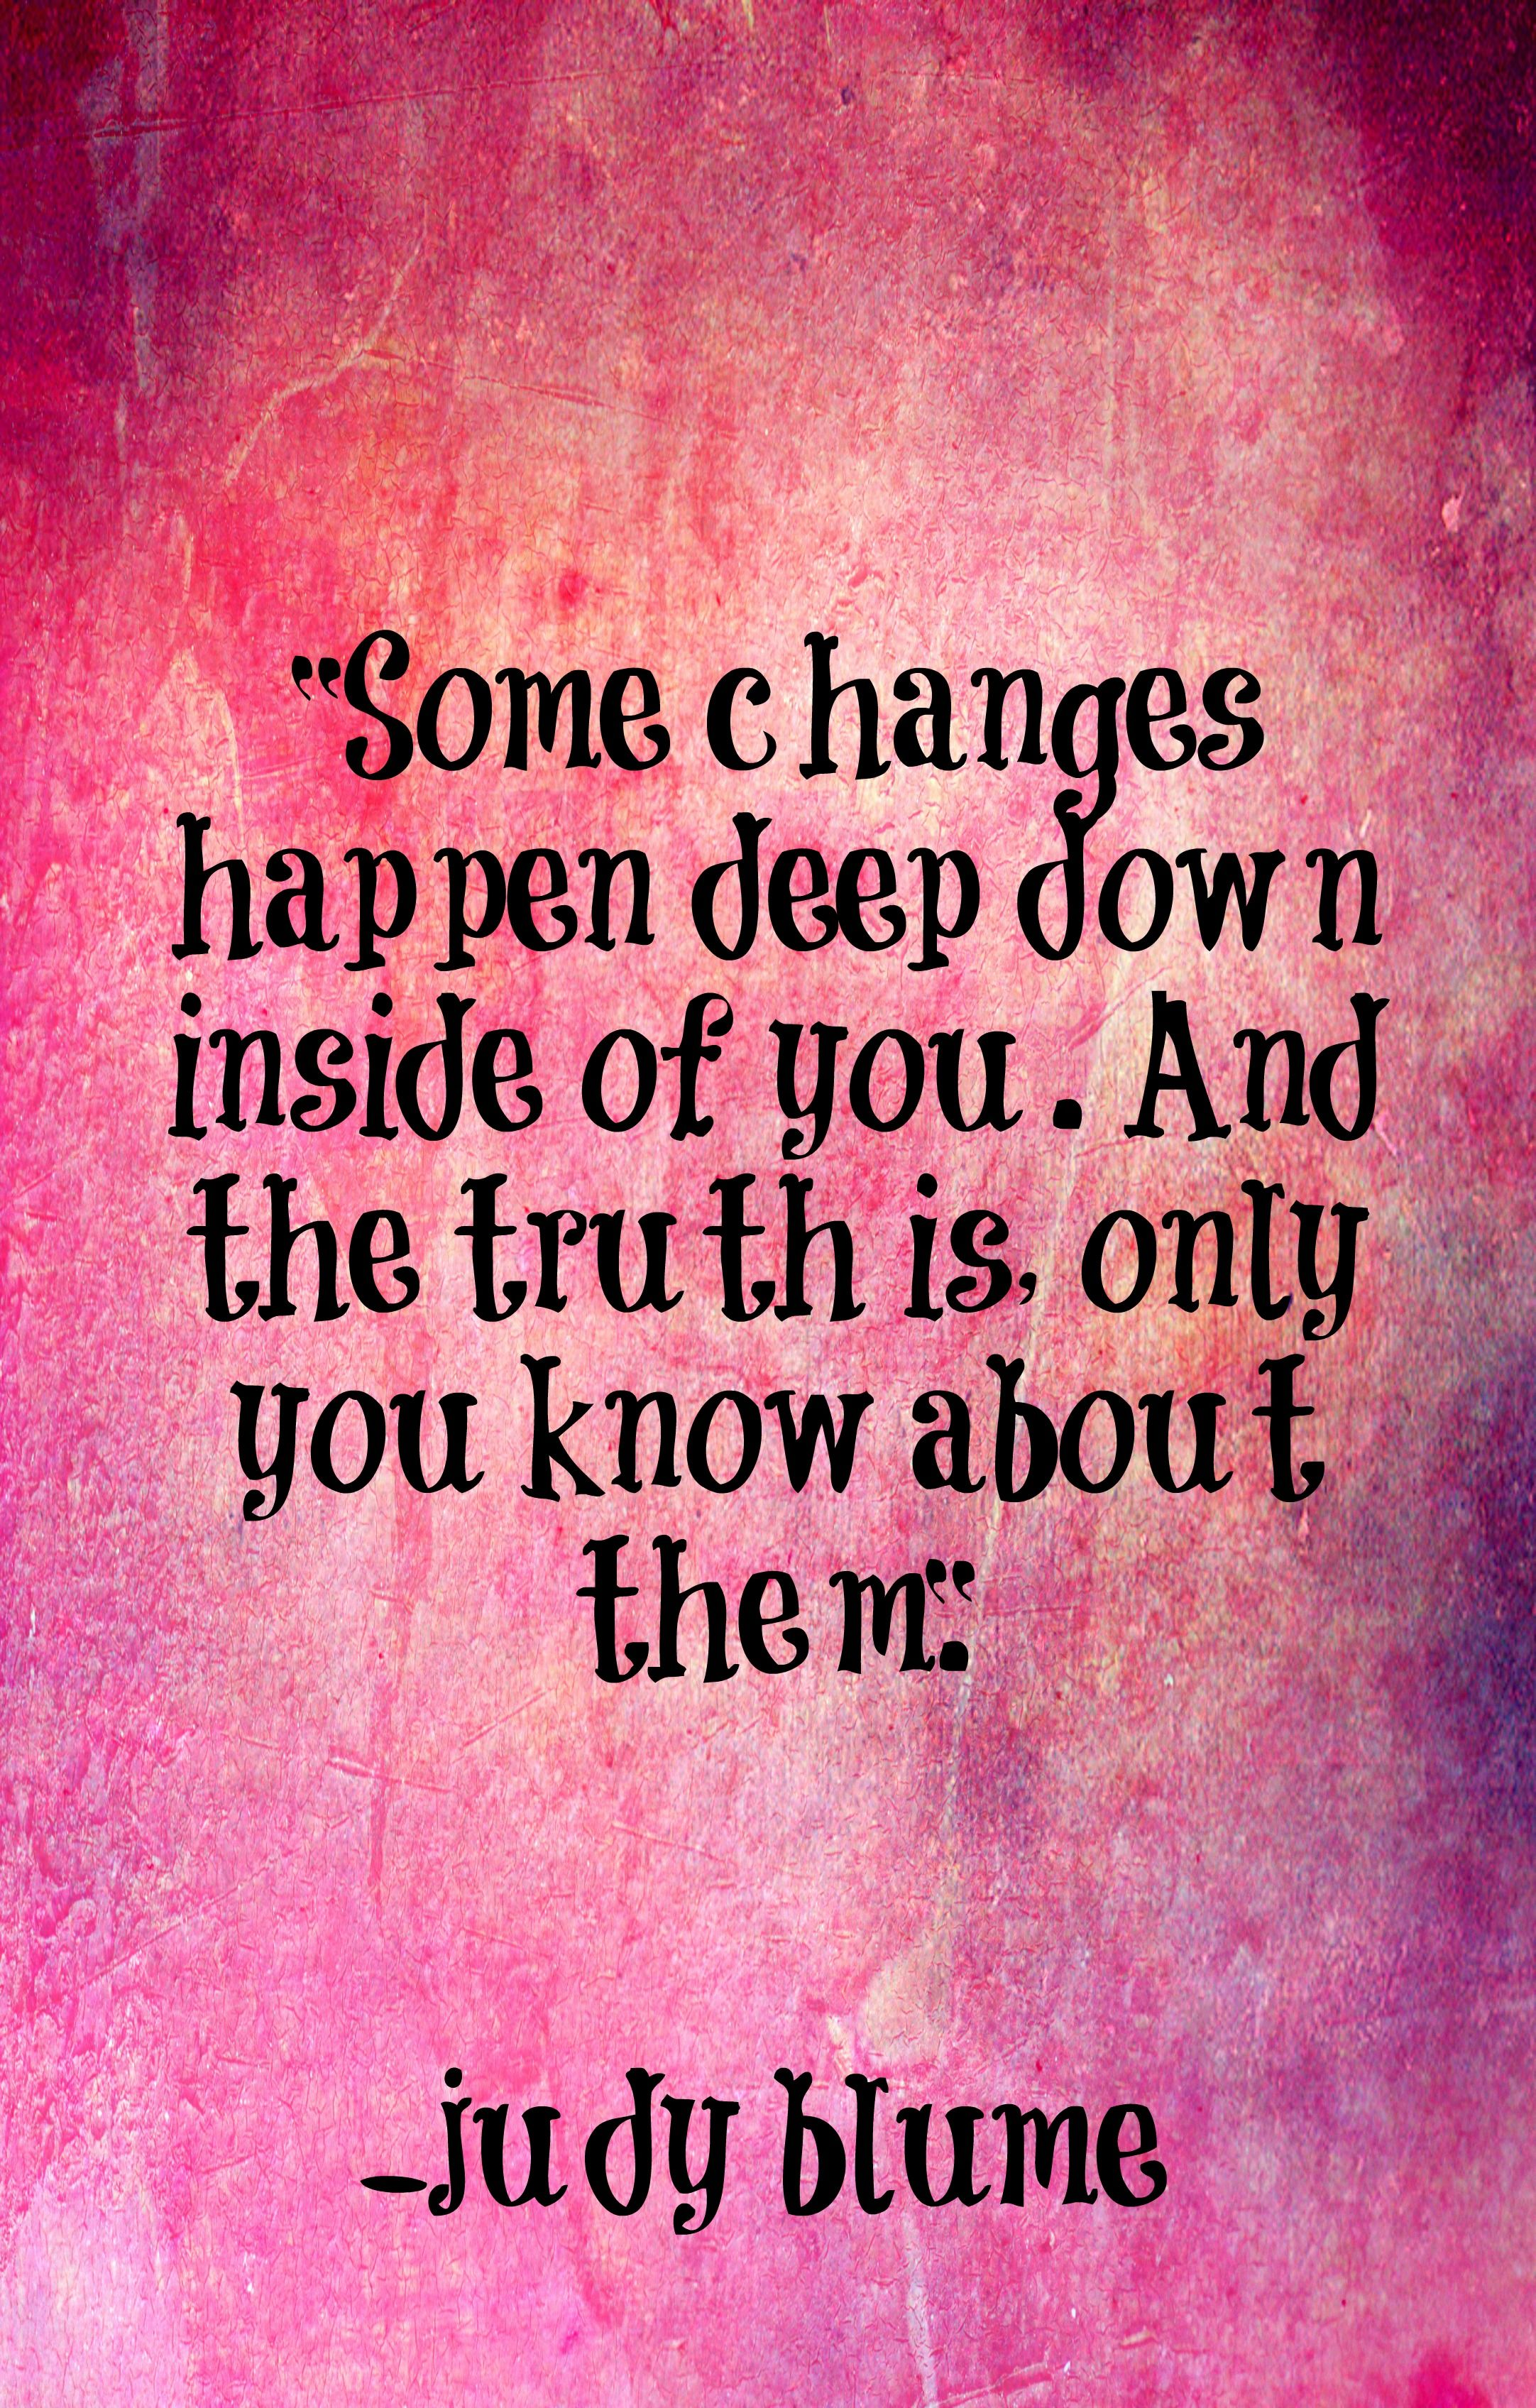 Some changes happen deep inside of you. And the truth is